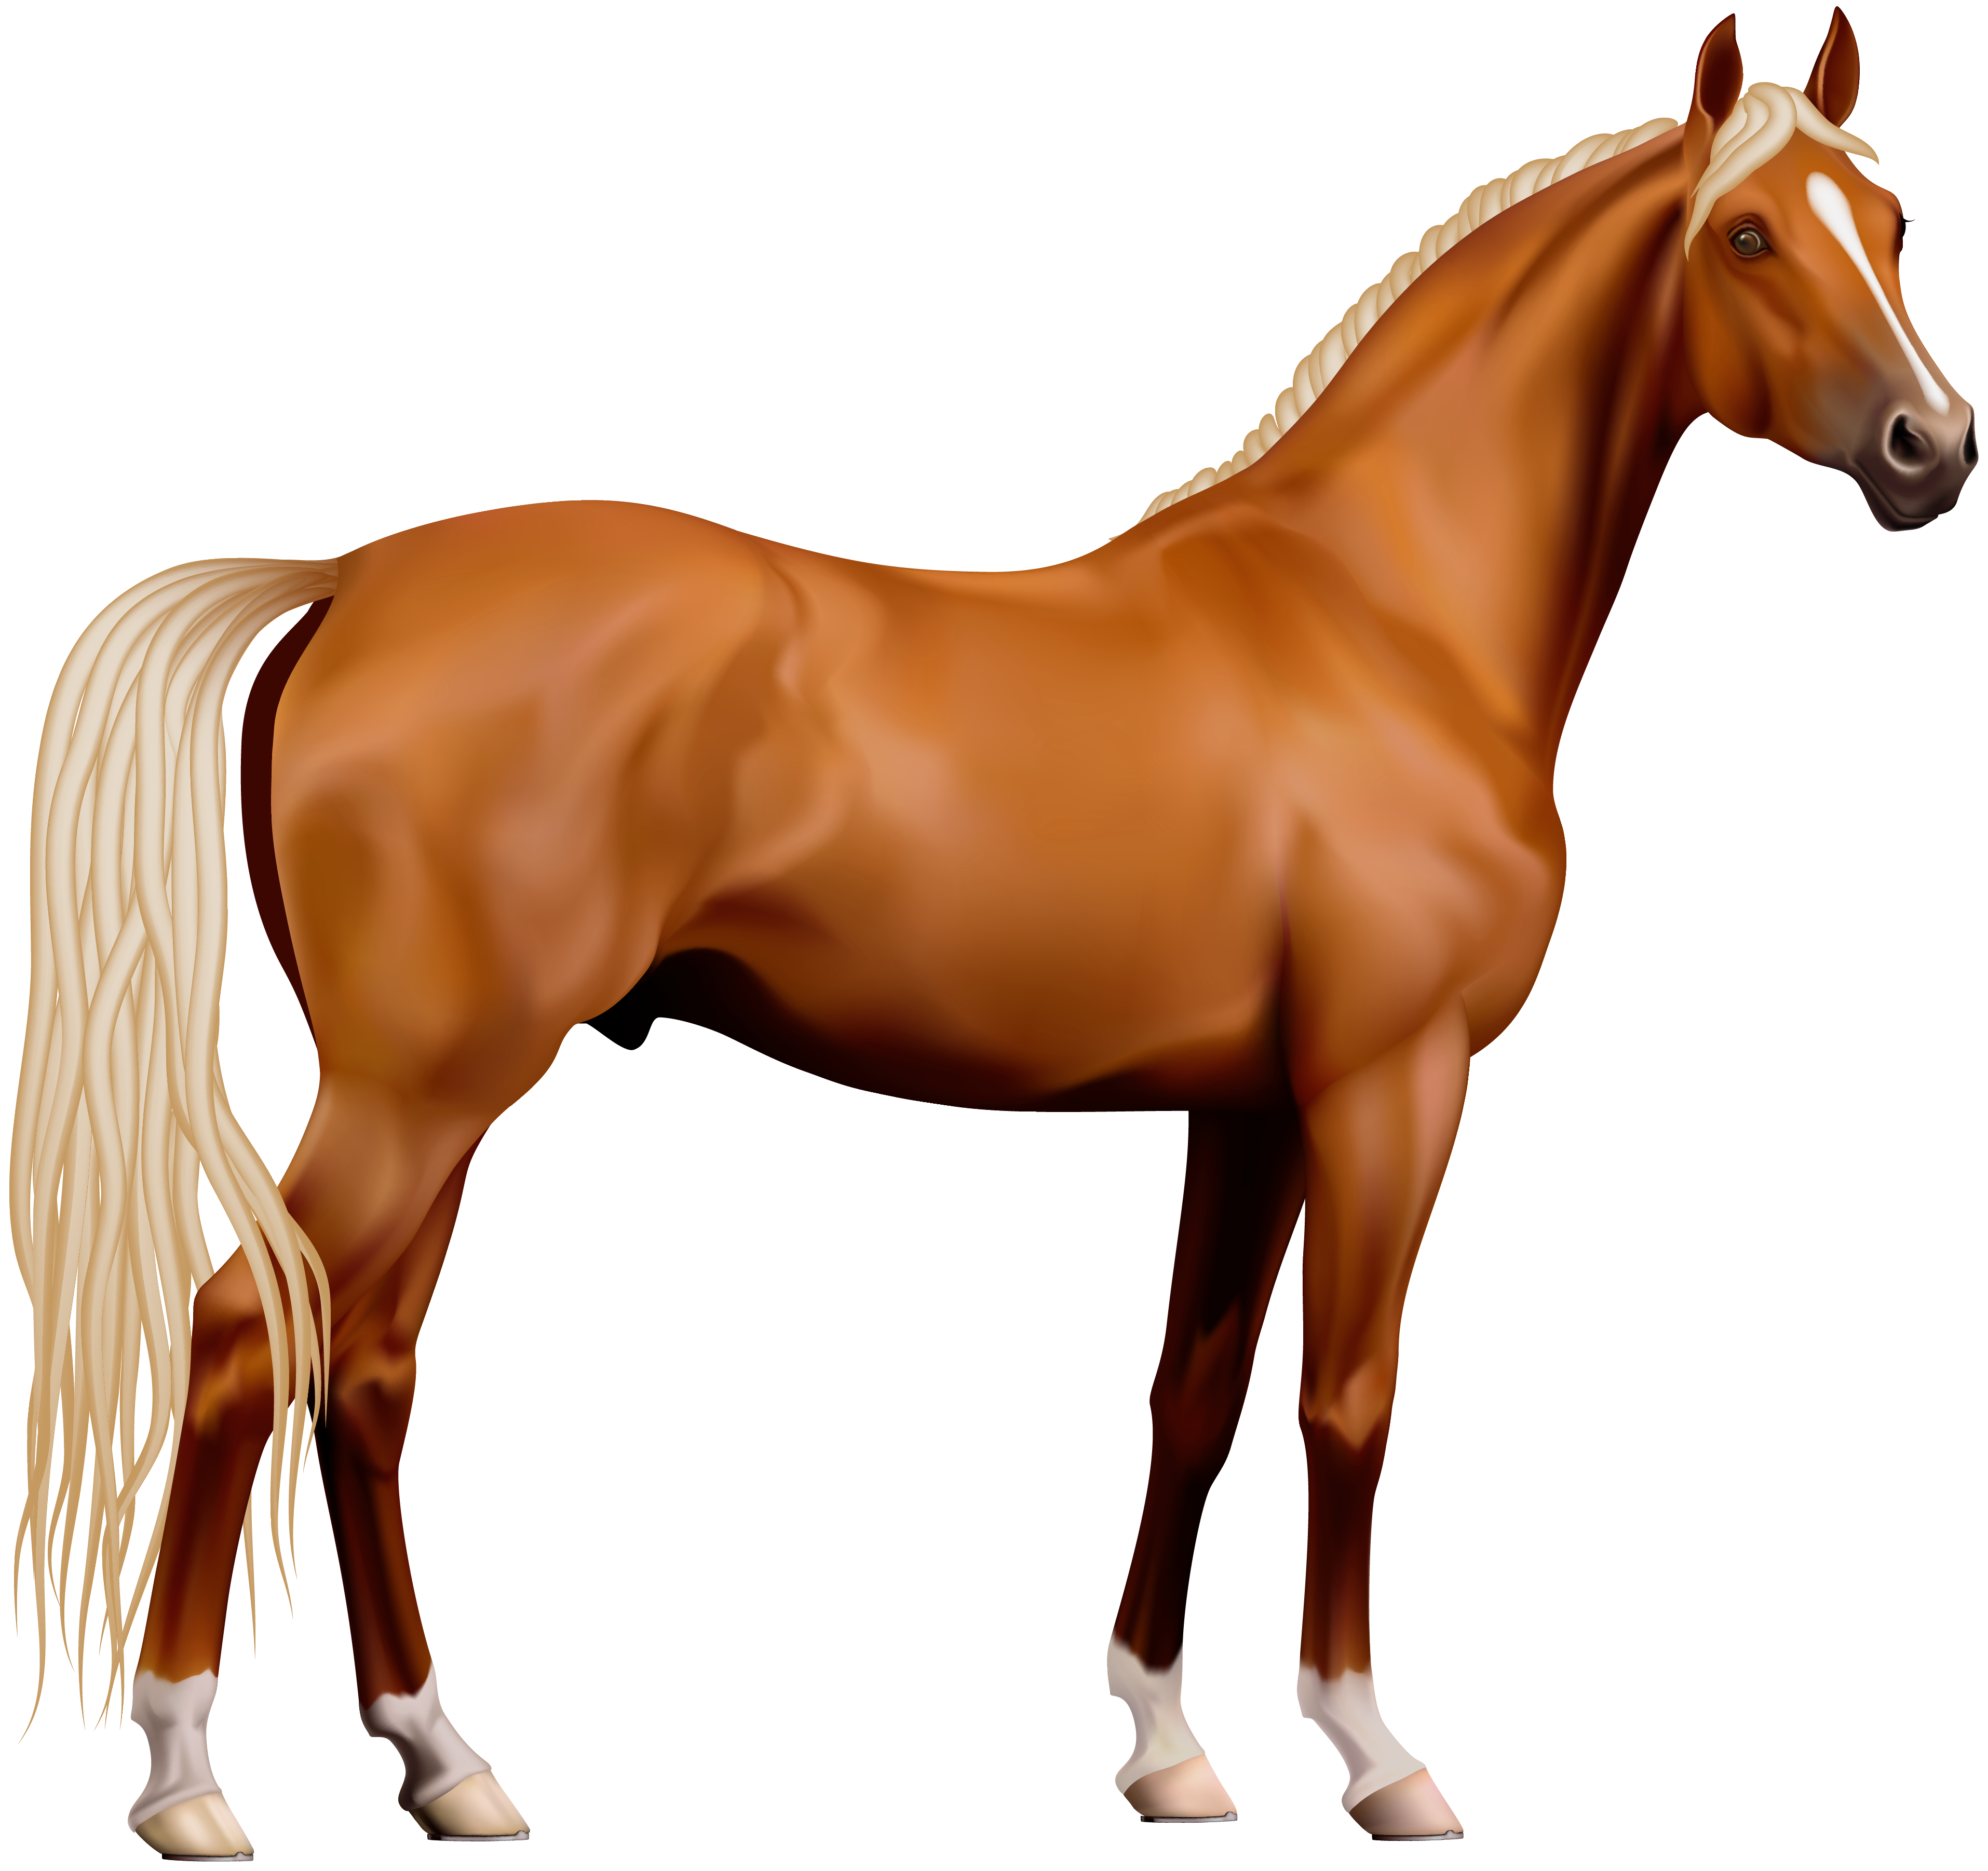 Horse Image - Horse HD PNG